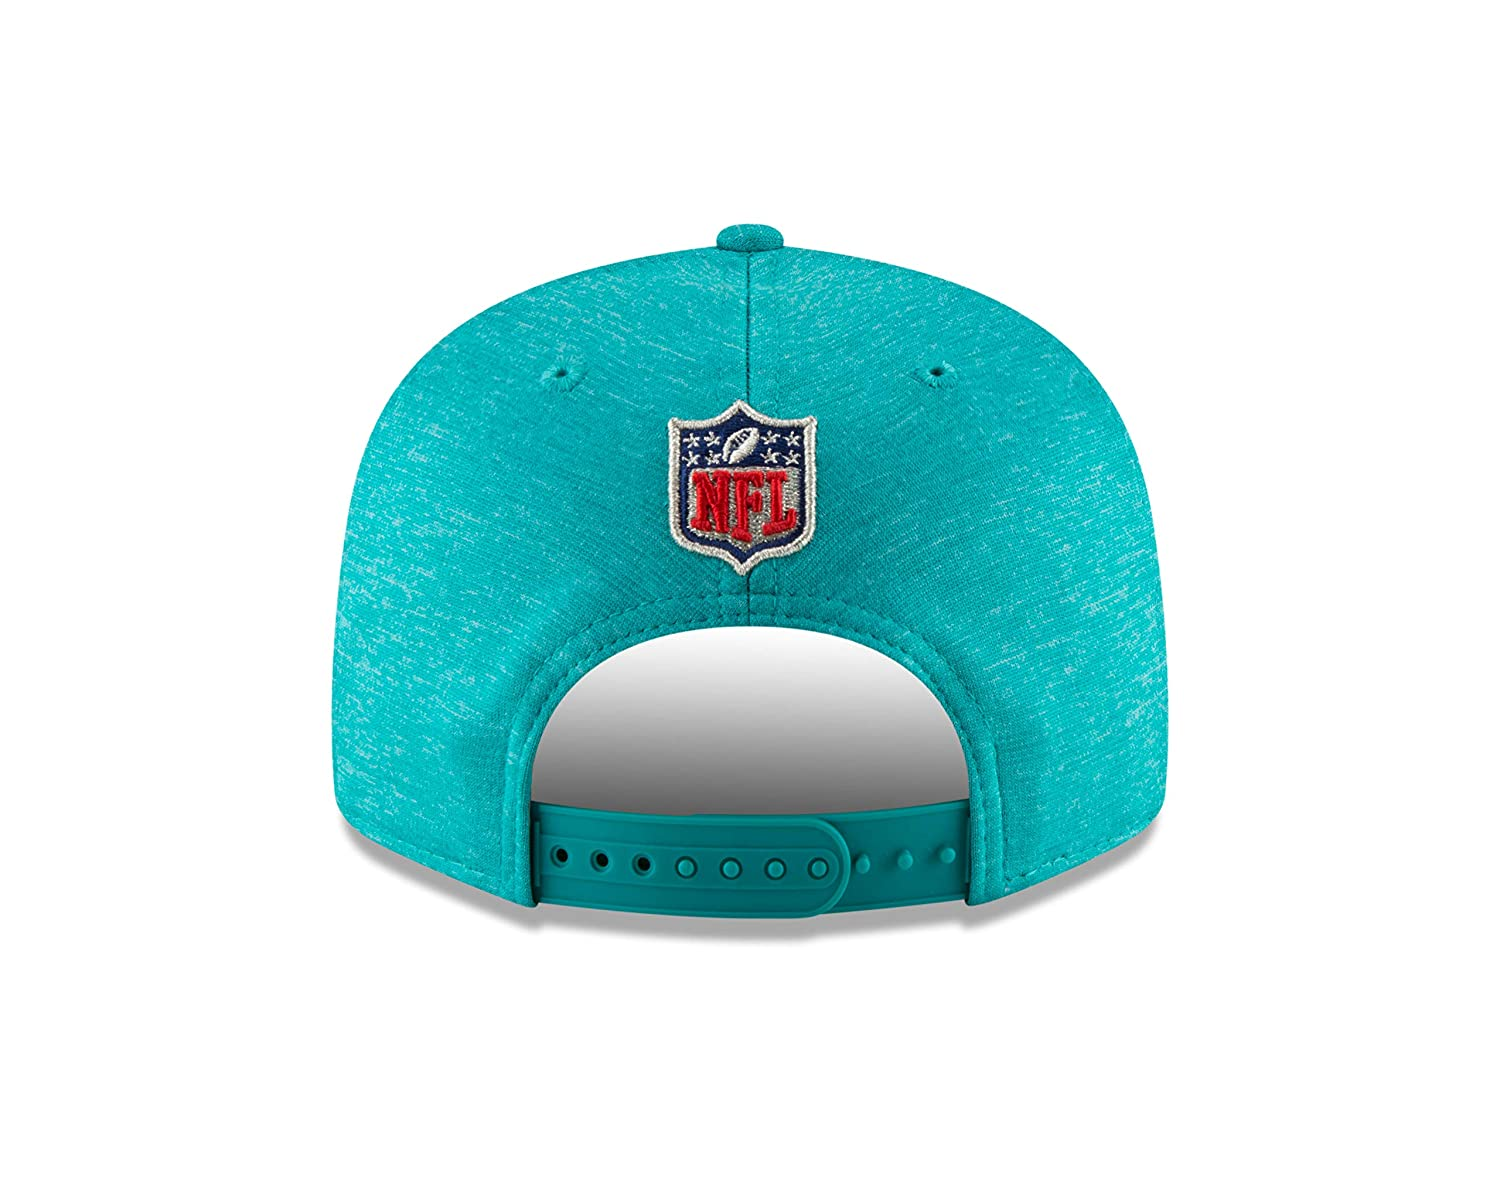 ac0bc2b90 Amazon.com   New Era Miami Dolphins 2018 NFL Sideline Road Official 9FIFTY  Snapback Hat   Sports   Outdoors